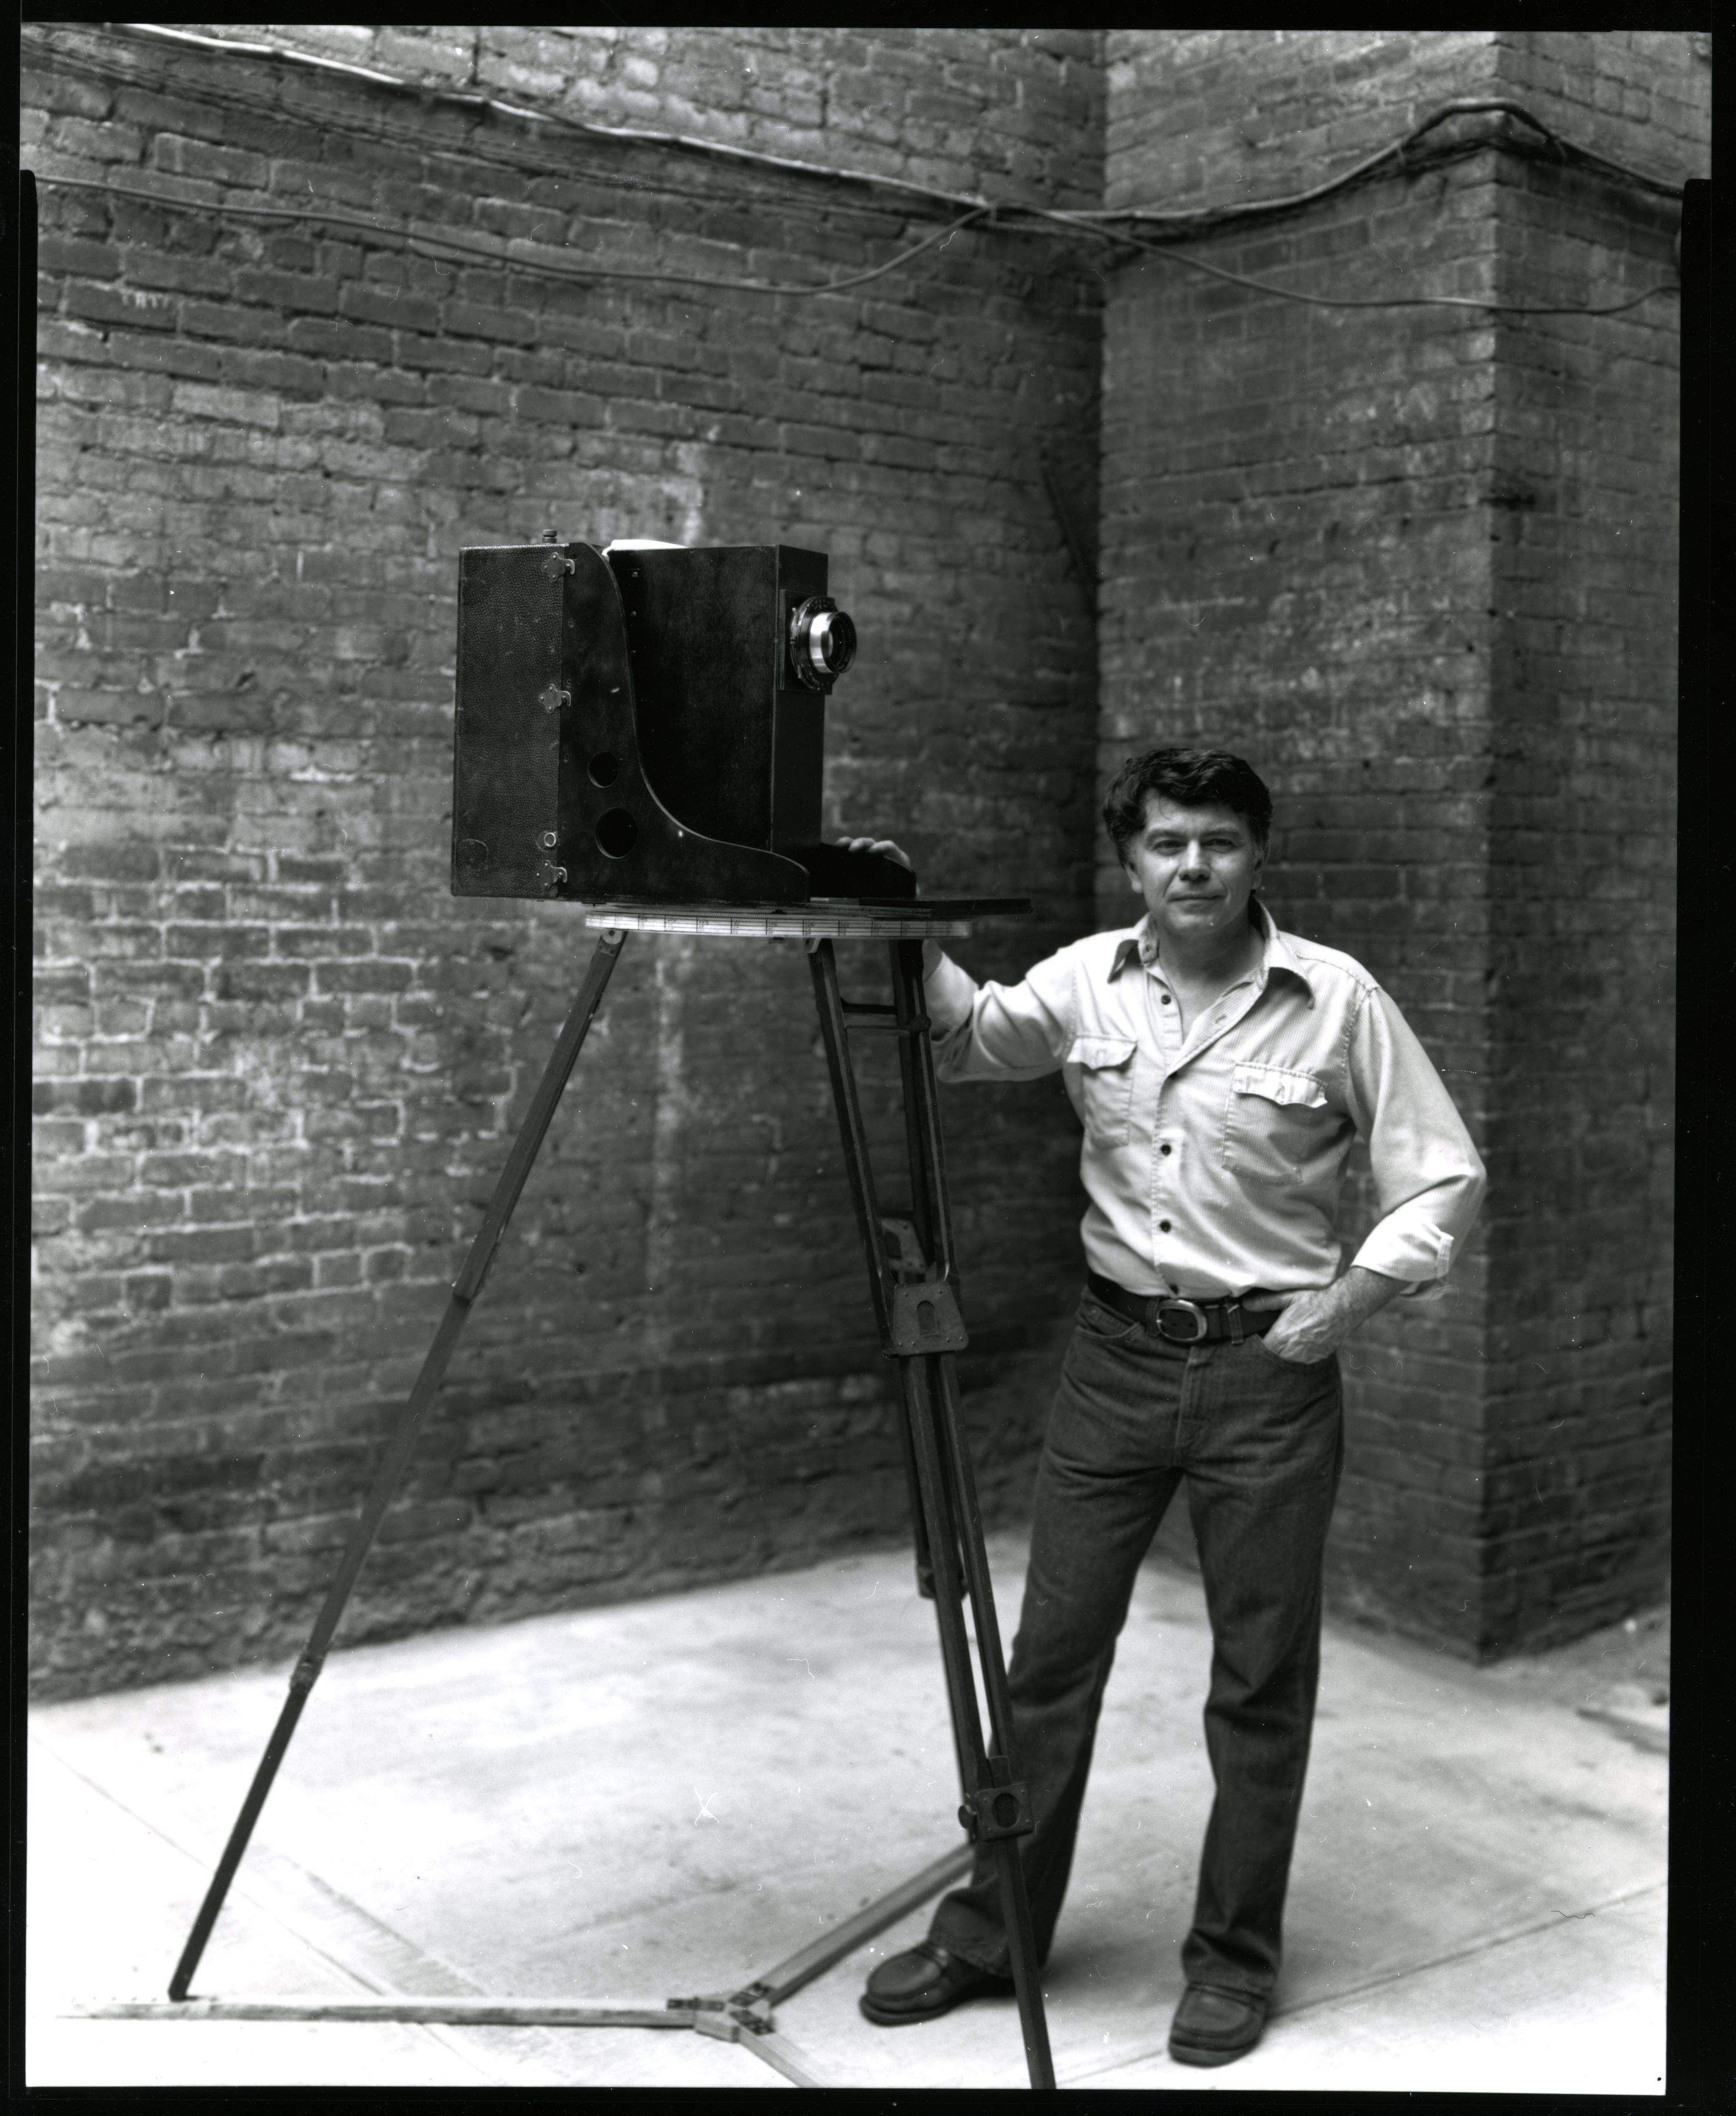 Black and white photographic portrait of Kenneth Snelson